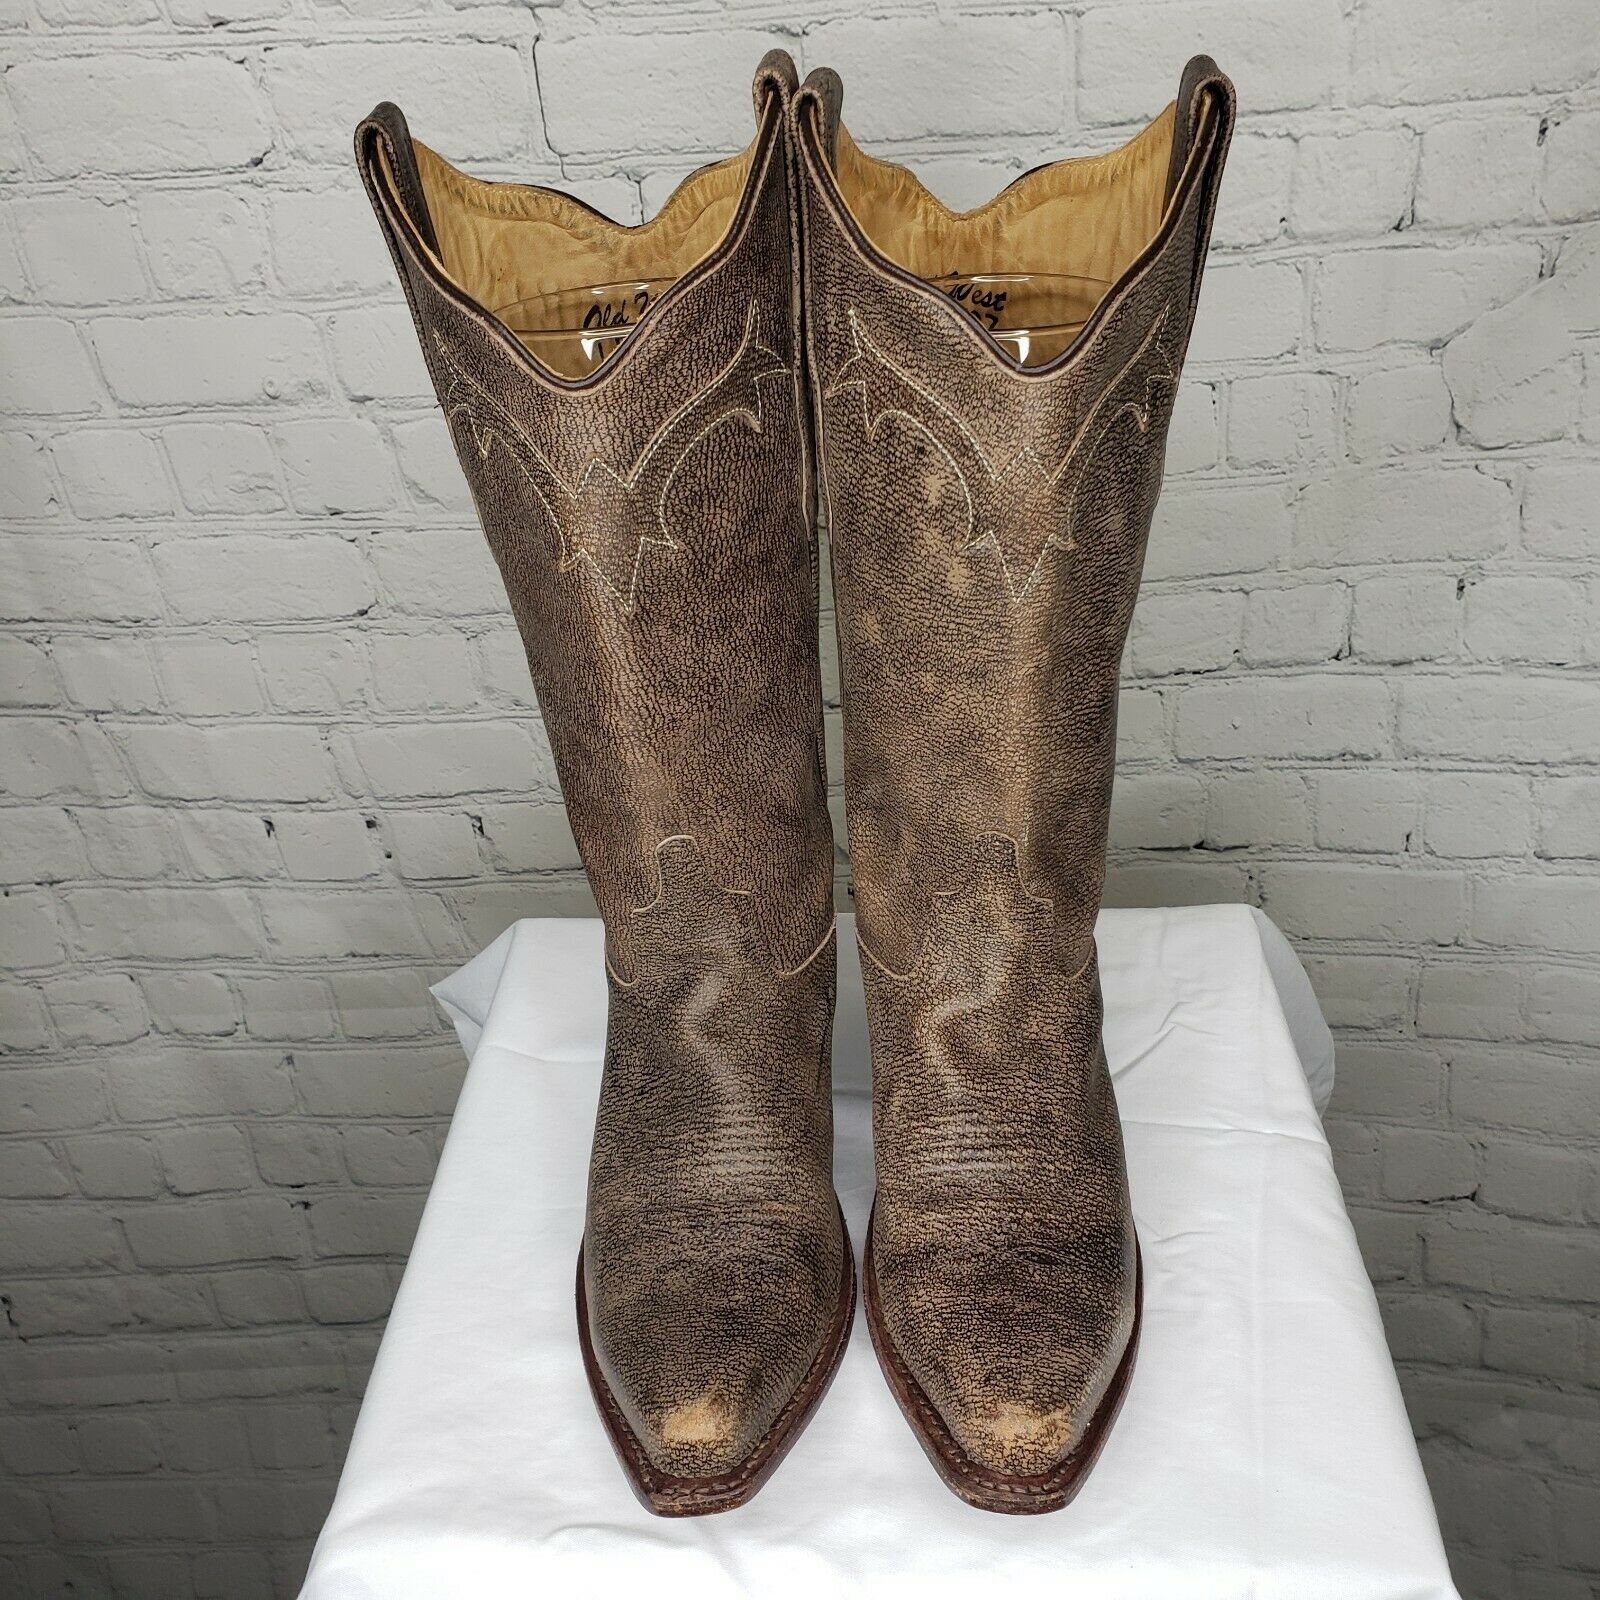 Women's 7 M Old West Tan Canyon Snip Toe Western Cowboy Boots LF1527